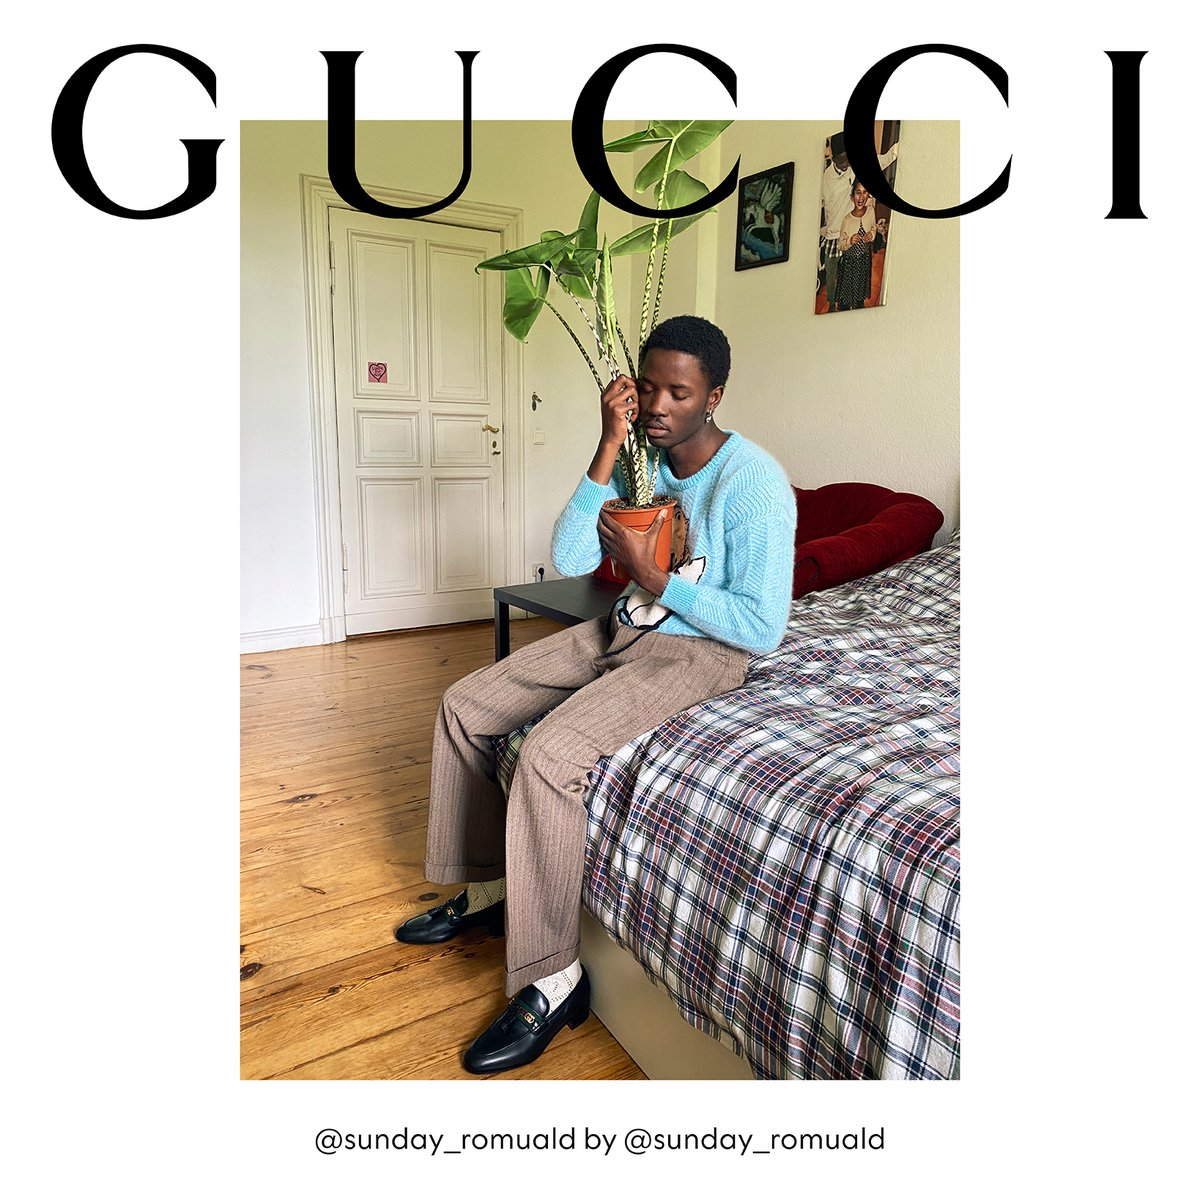 Wearing #GucciFW20, models including #SundayRomuald photograph themselves from the comfort of their own homes for the new campaign, #GucciTheRitual. https://t.co/Hq6G7EzoqI #AlessandroMichele https://t.co/Sl5PX08CHA